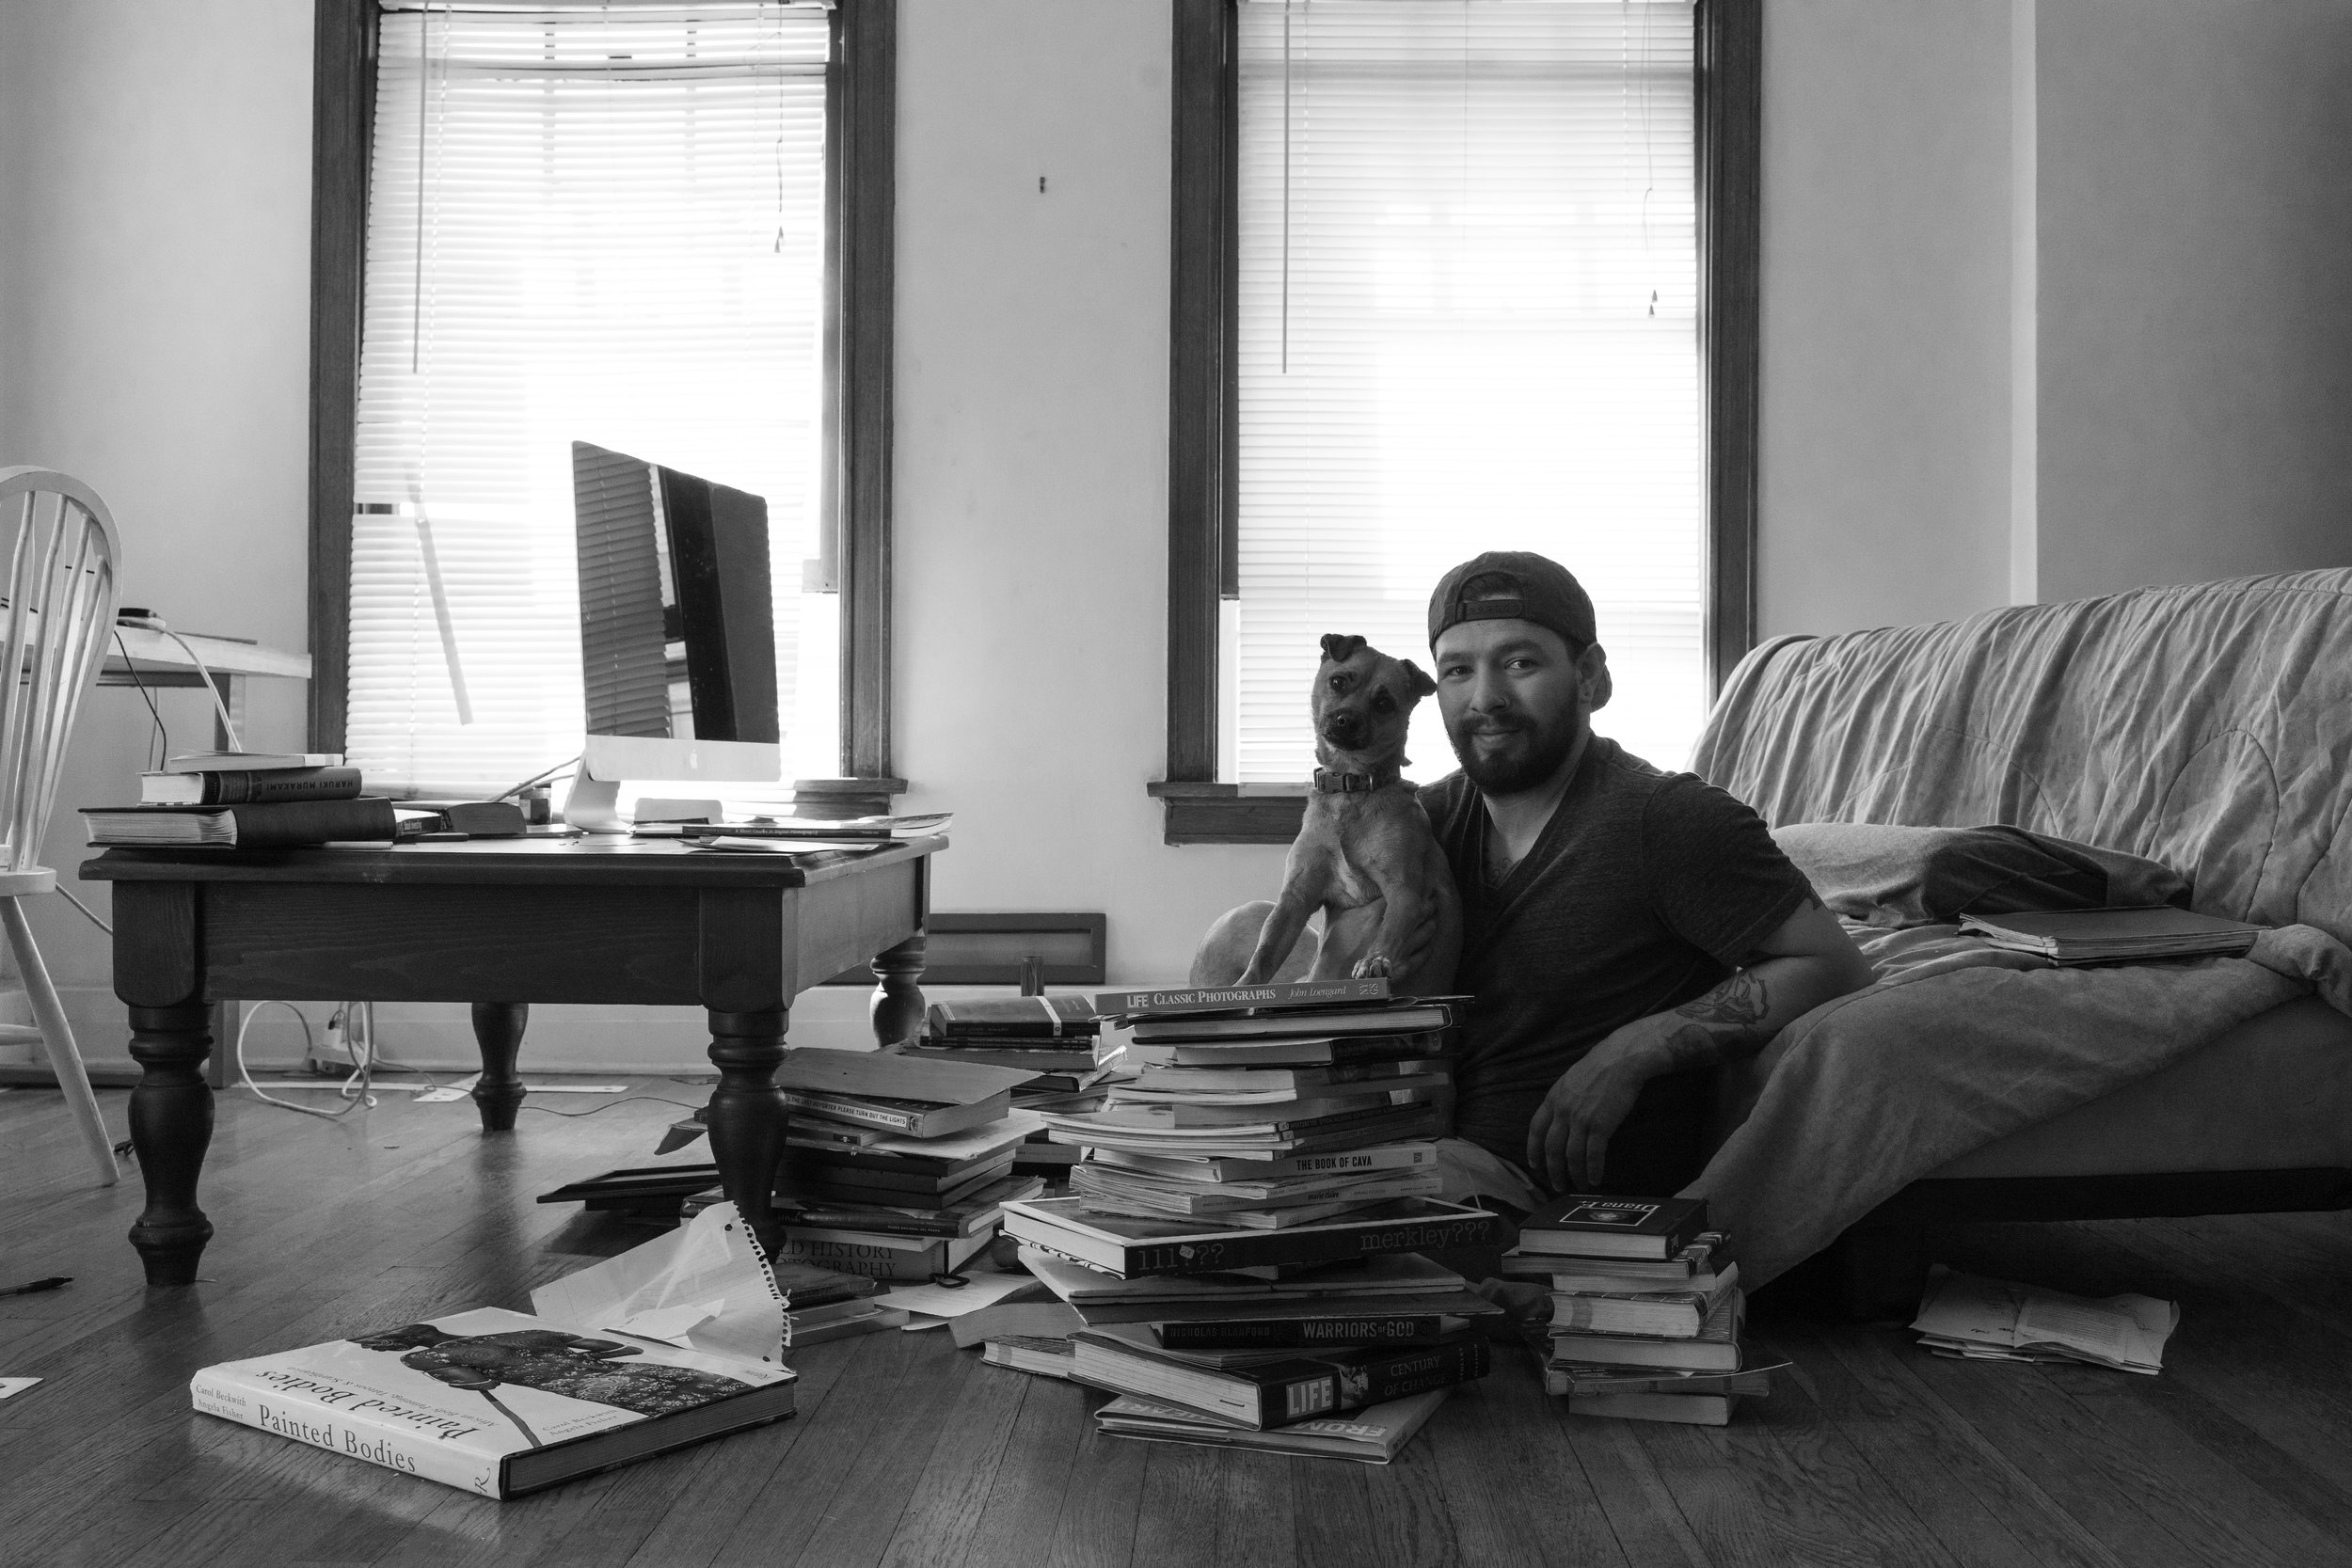 self-portrait of me and my Puppy Rocky, boy does she love photography books!